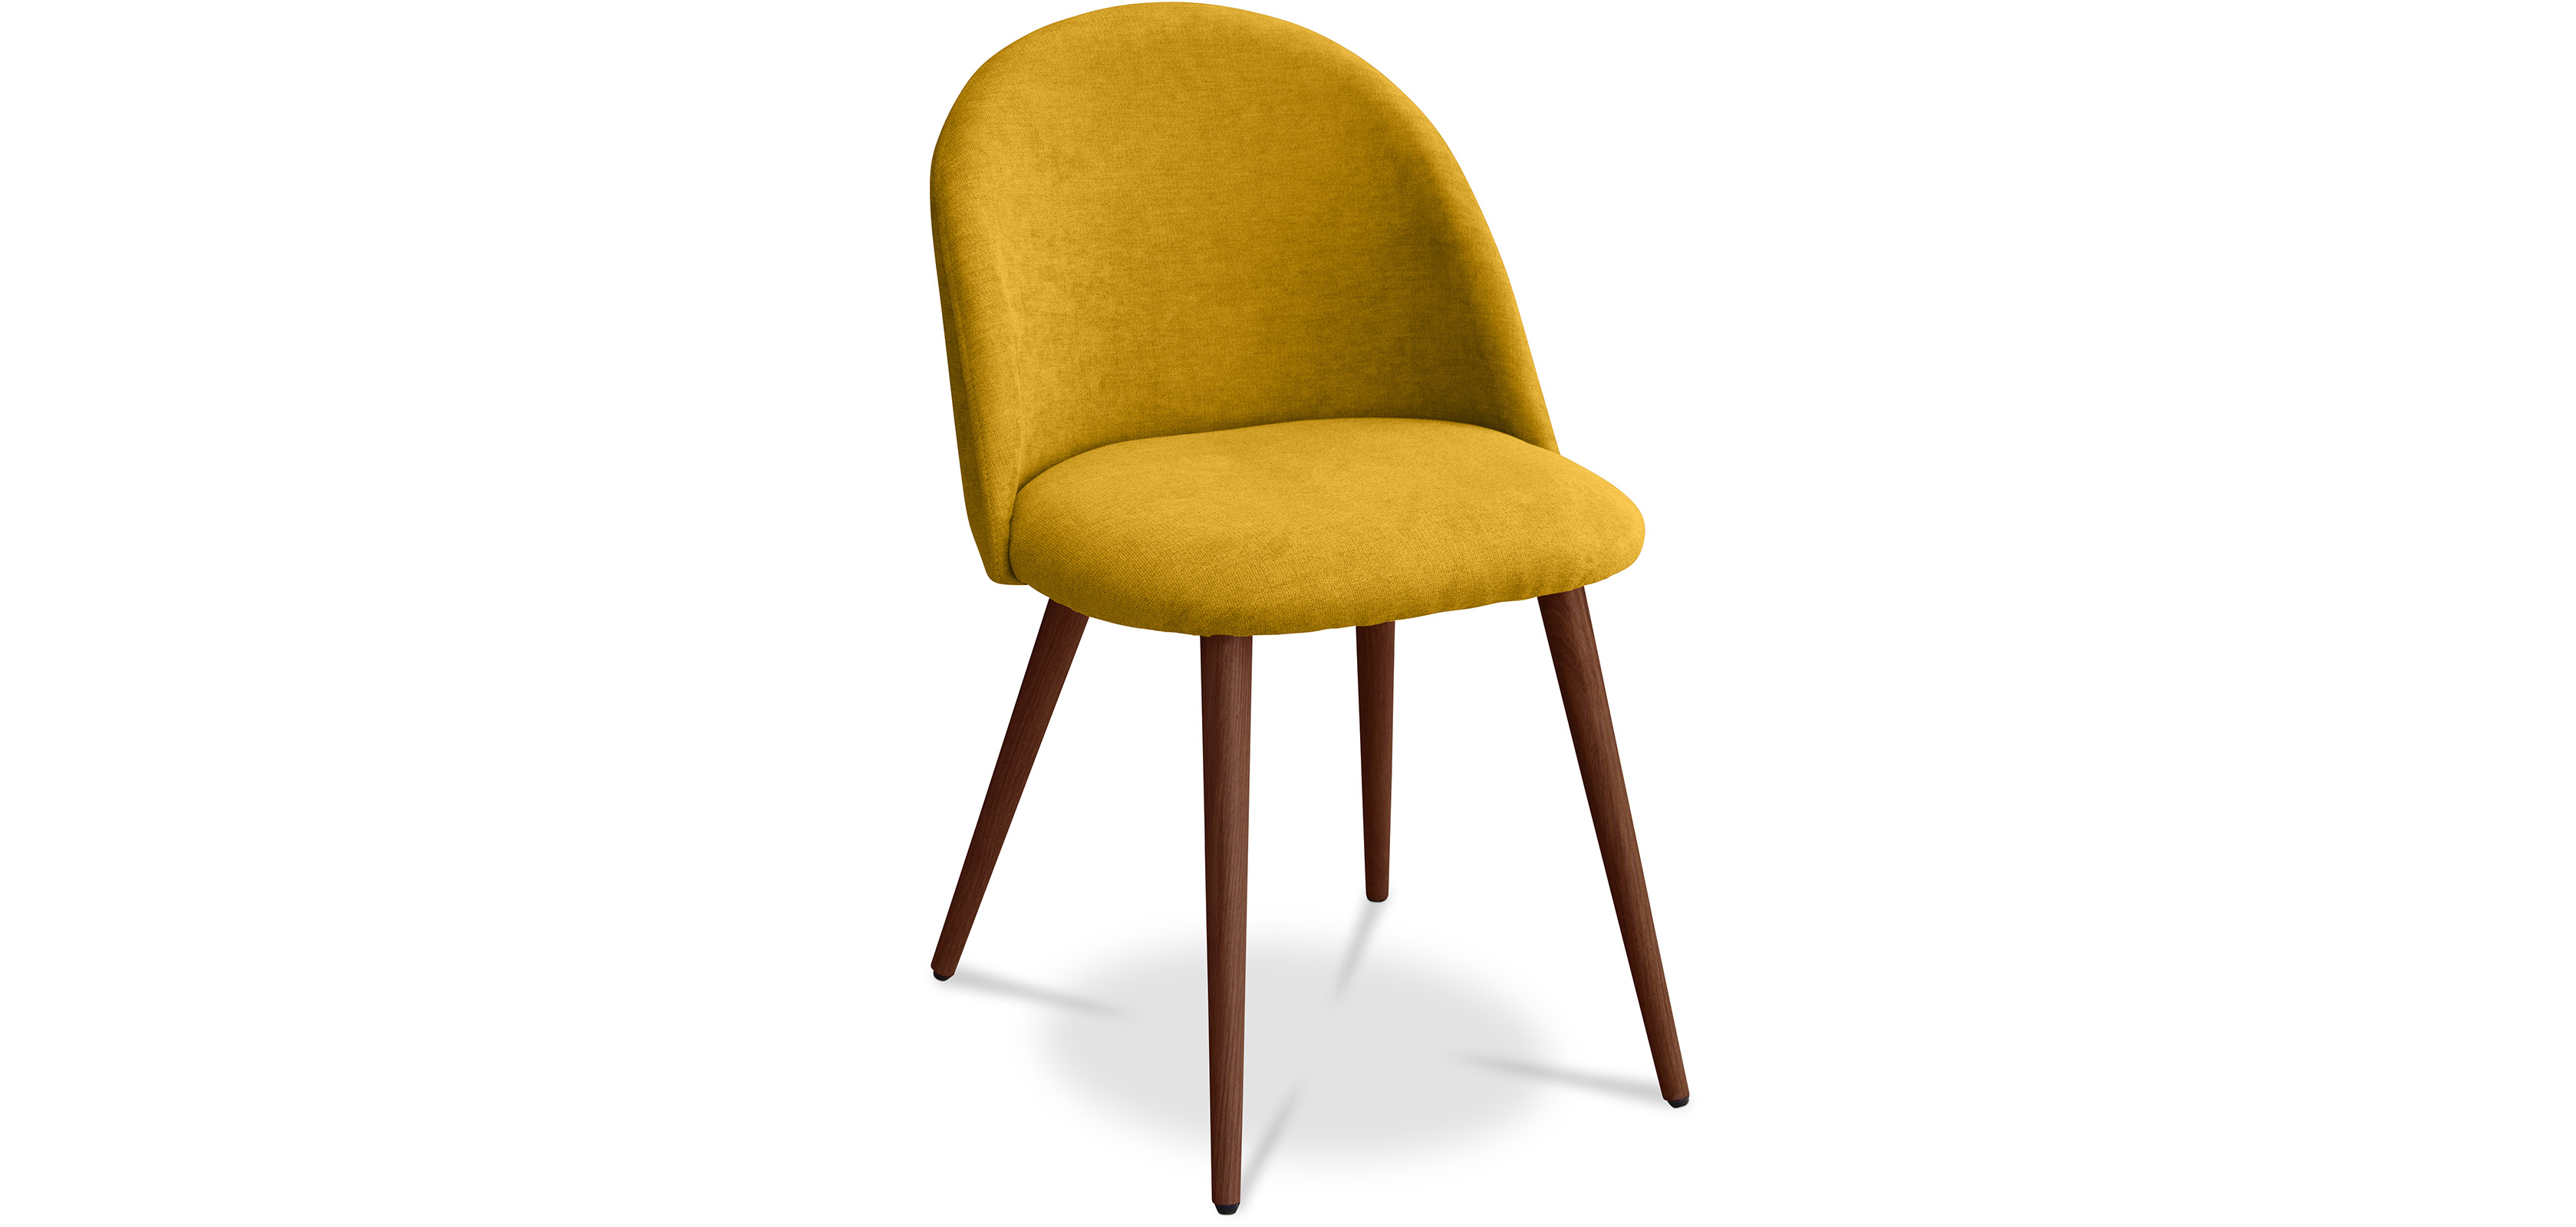 Buy Premium Evelyne Dining Chair - Dark legs Yellow 58982 - in the EU